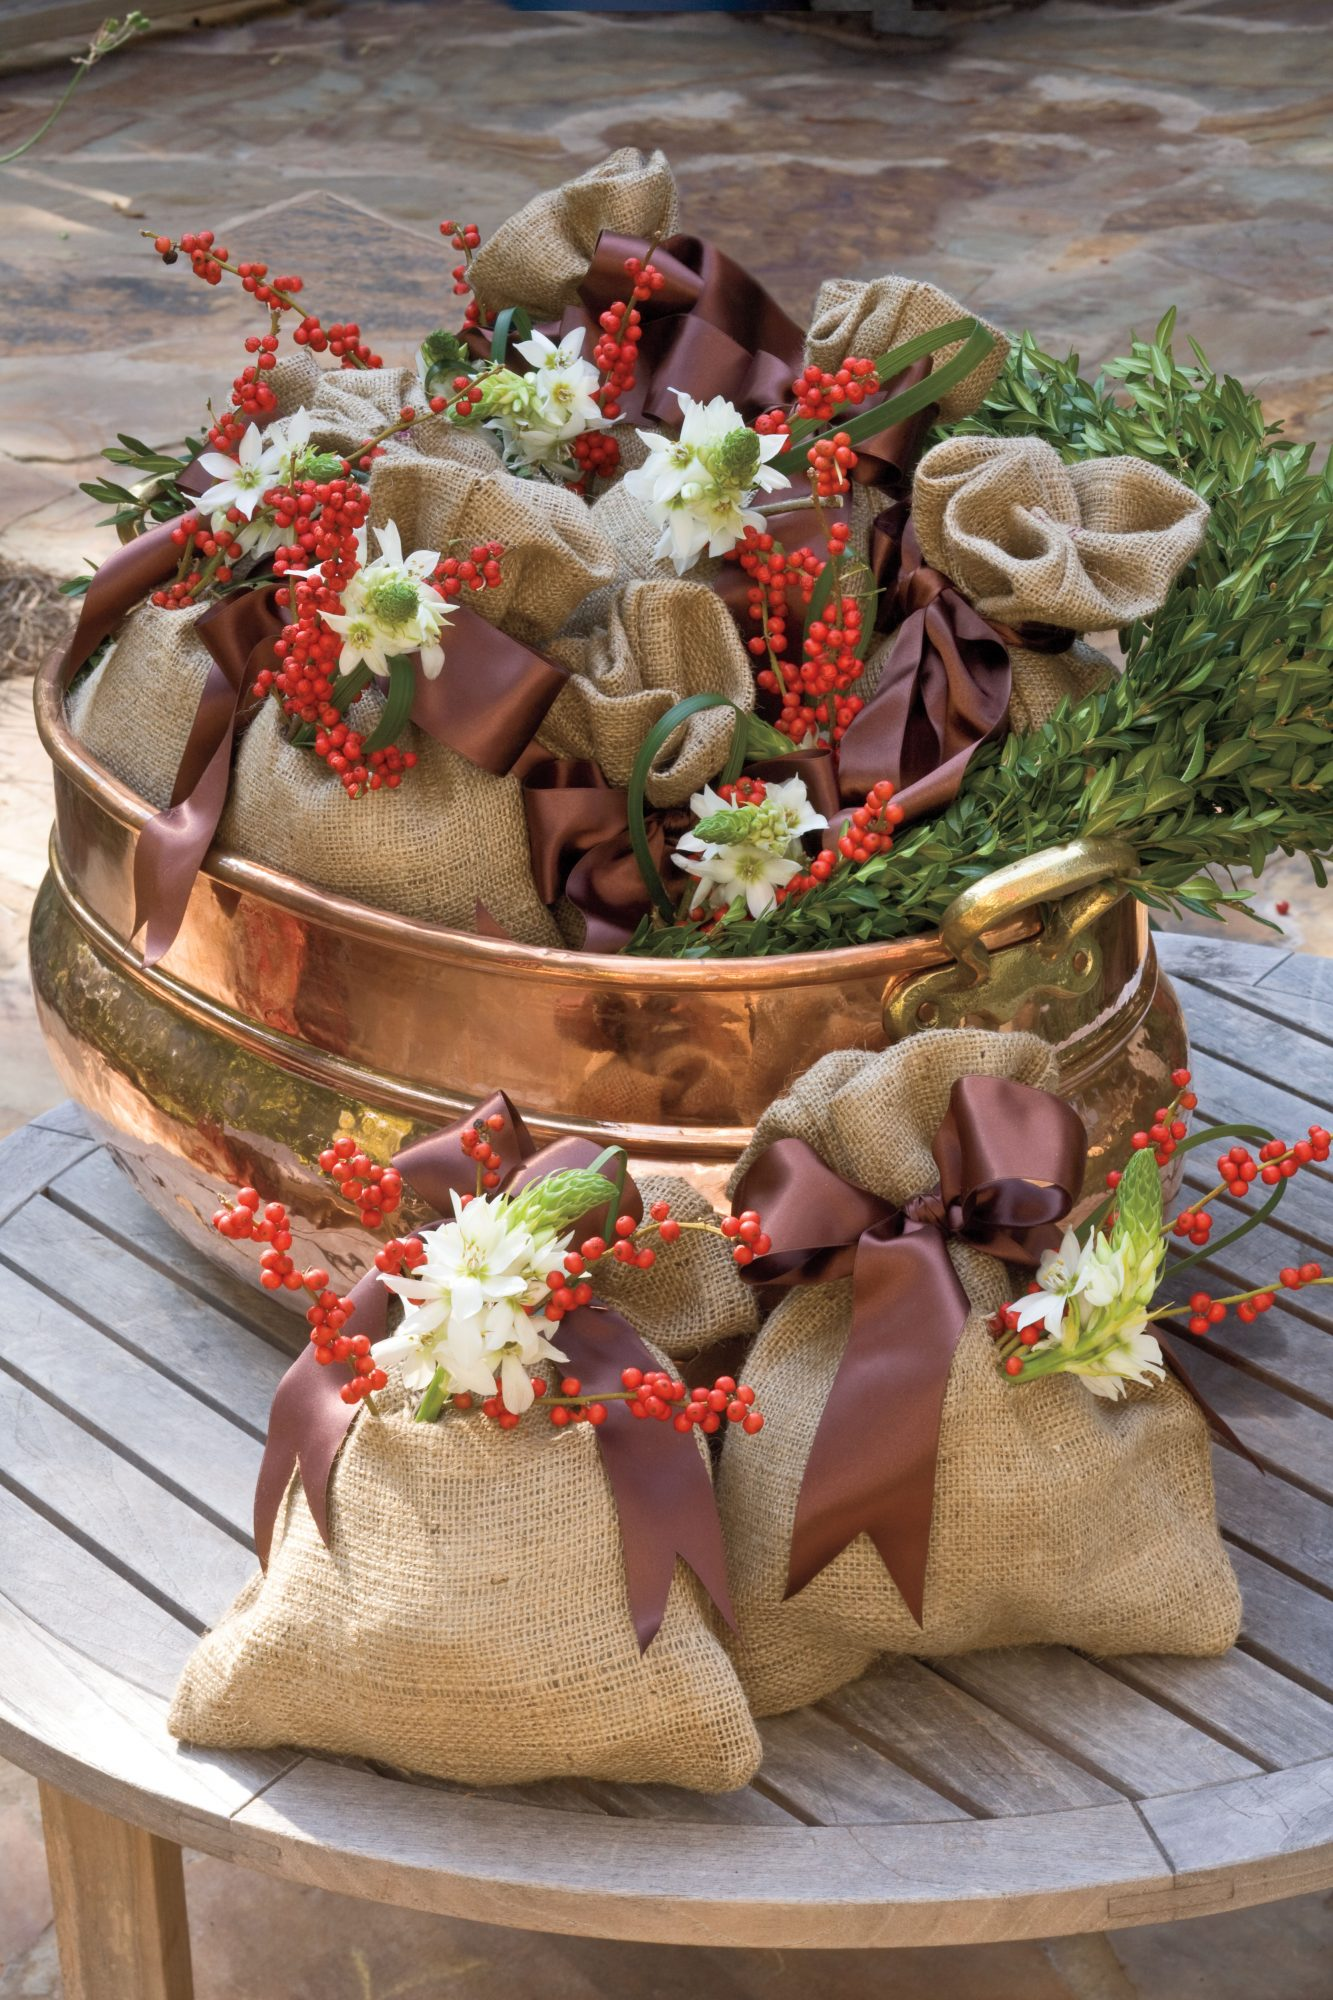 Wrap Gifts in Burlap